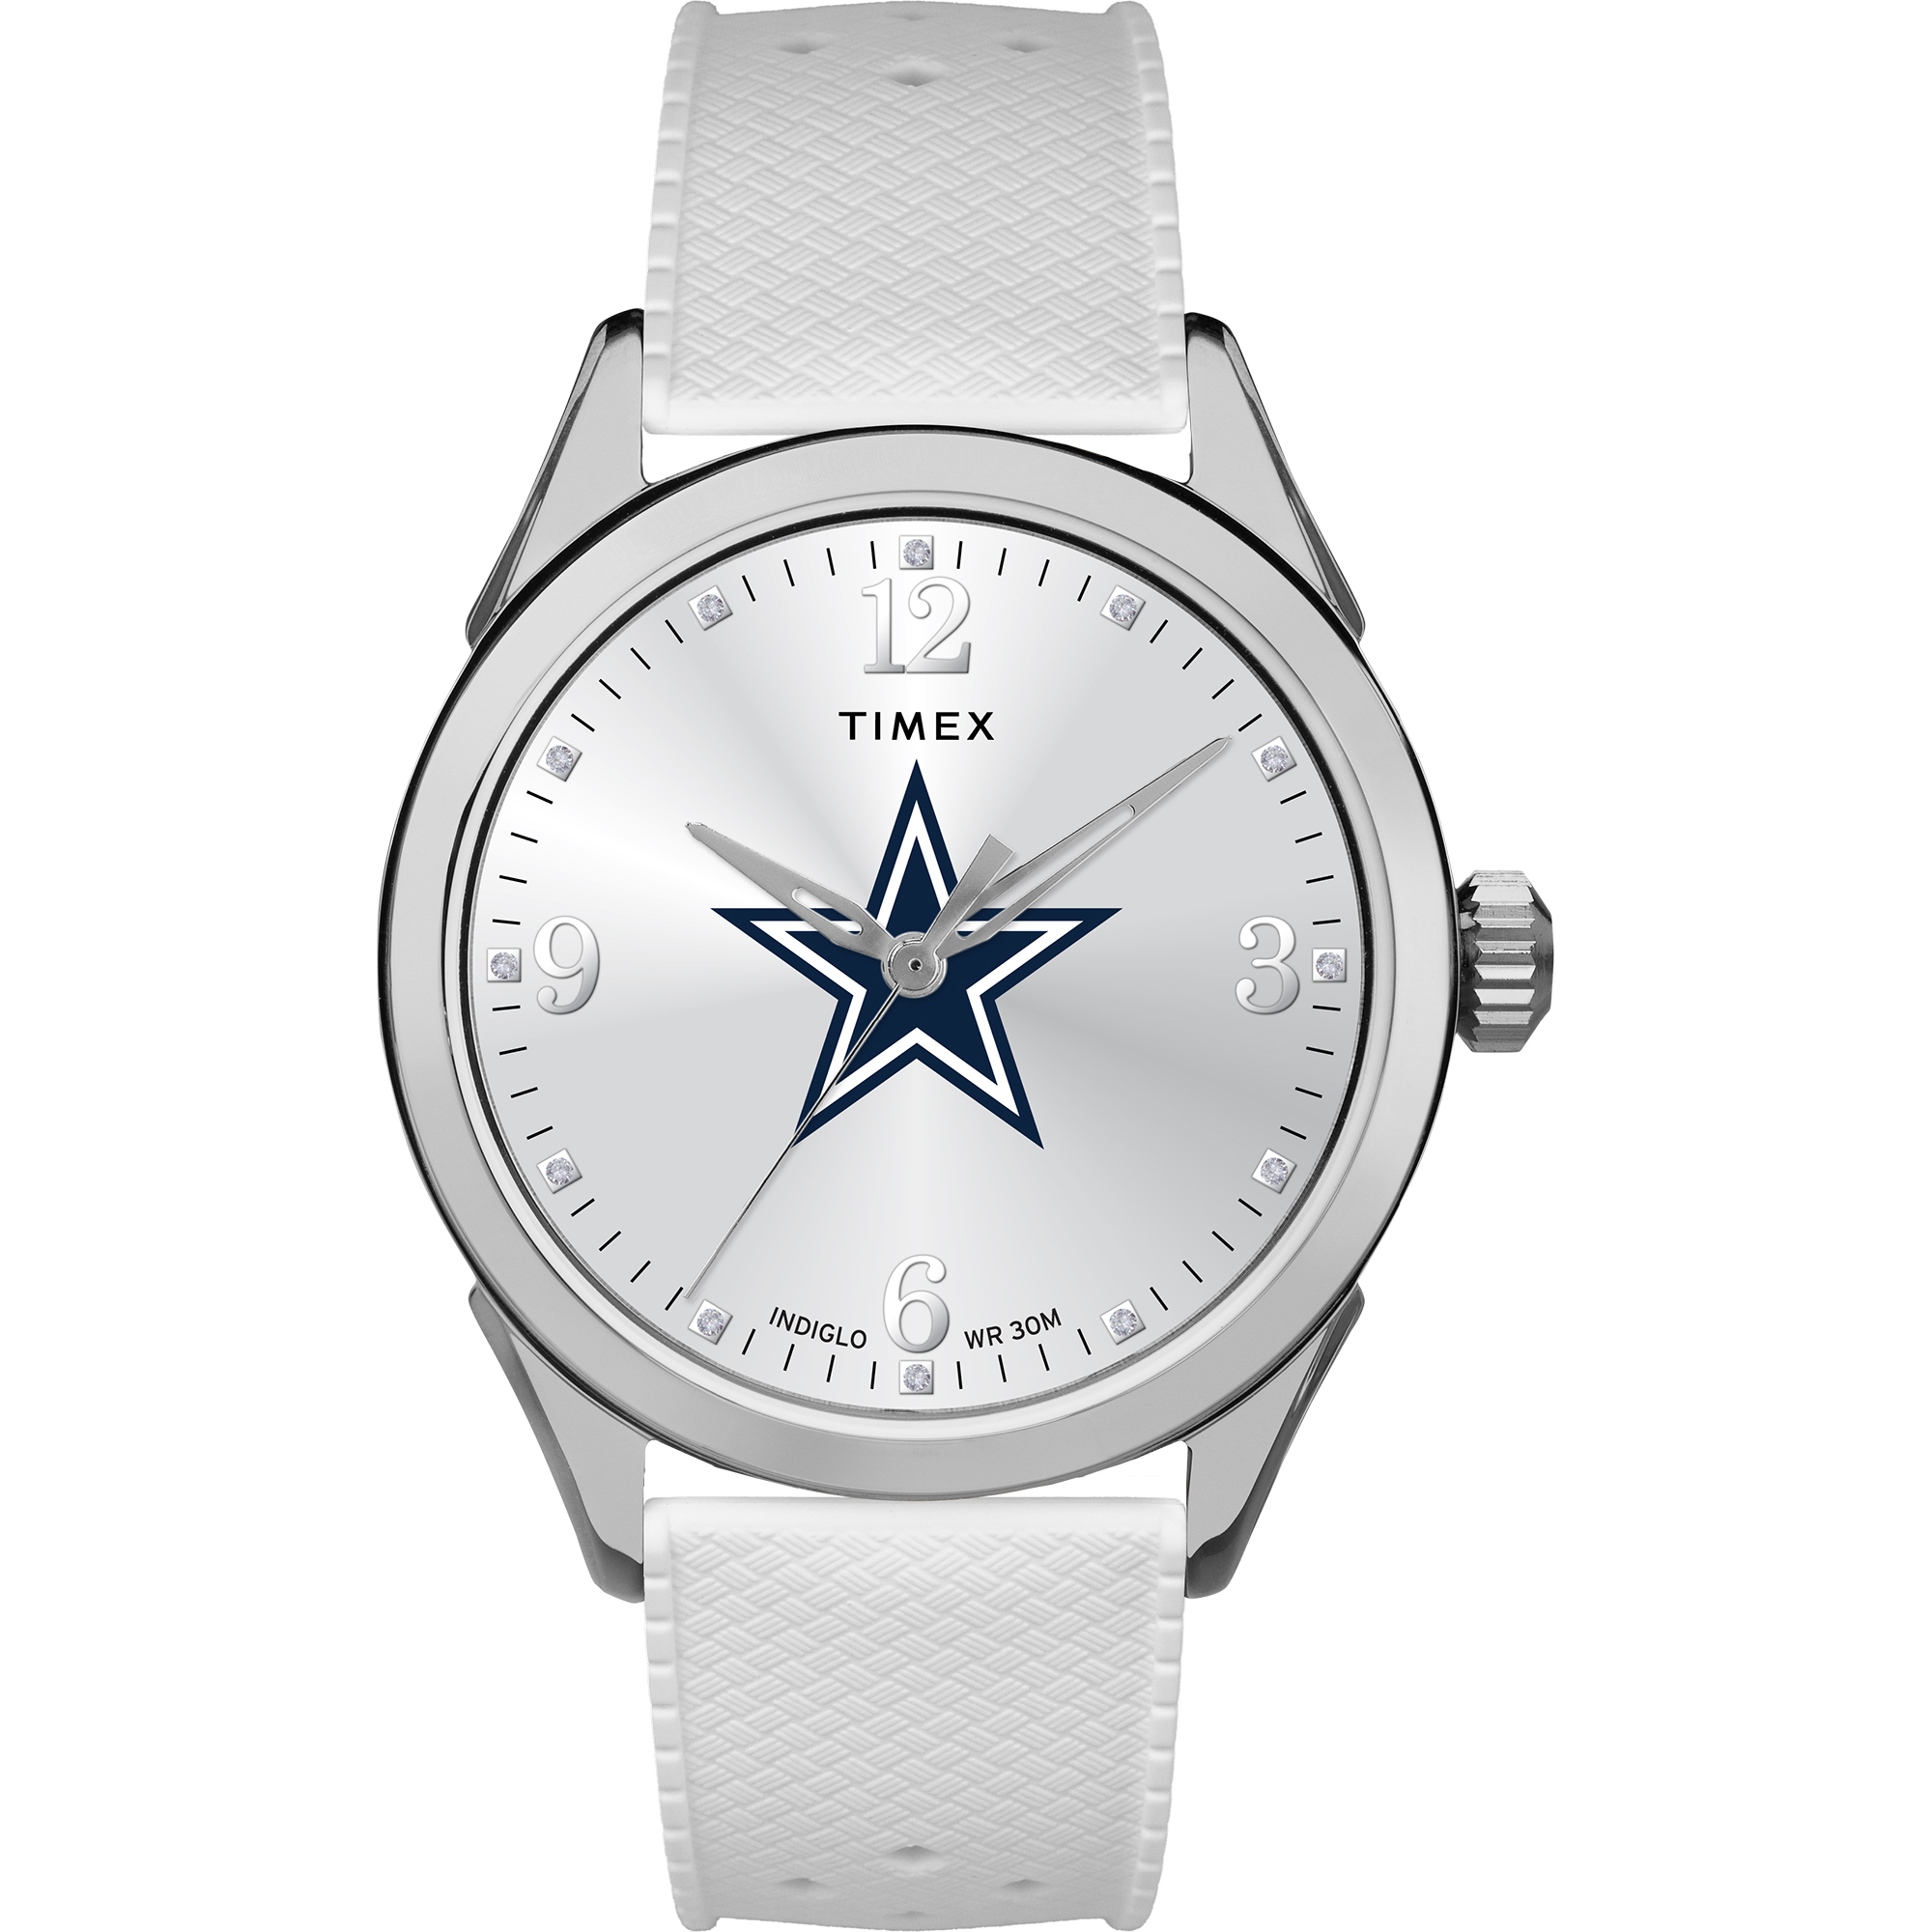 Timex - NFL Tribute Collection Athena Women's Watch, Dallas Cowboys